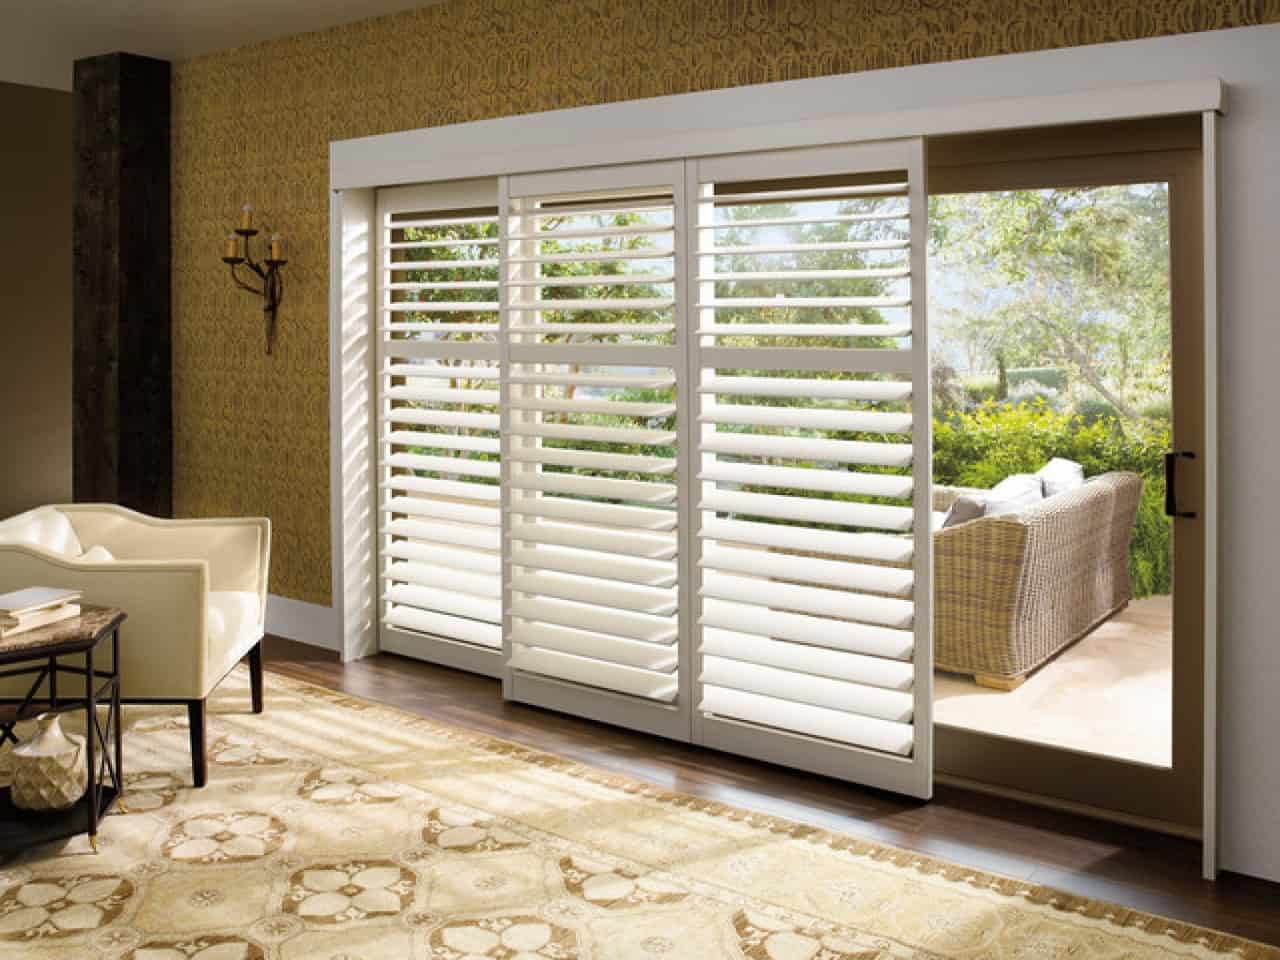 Exterior Sliding Glass Door window treatments for sliding glass doors (ideas & tips)